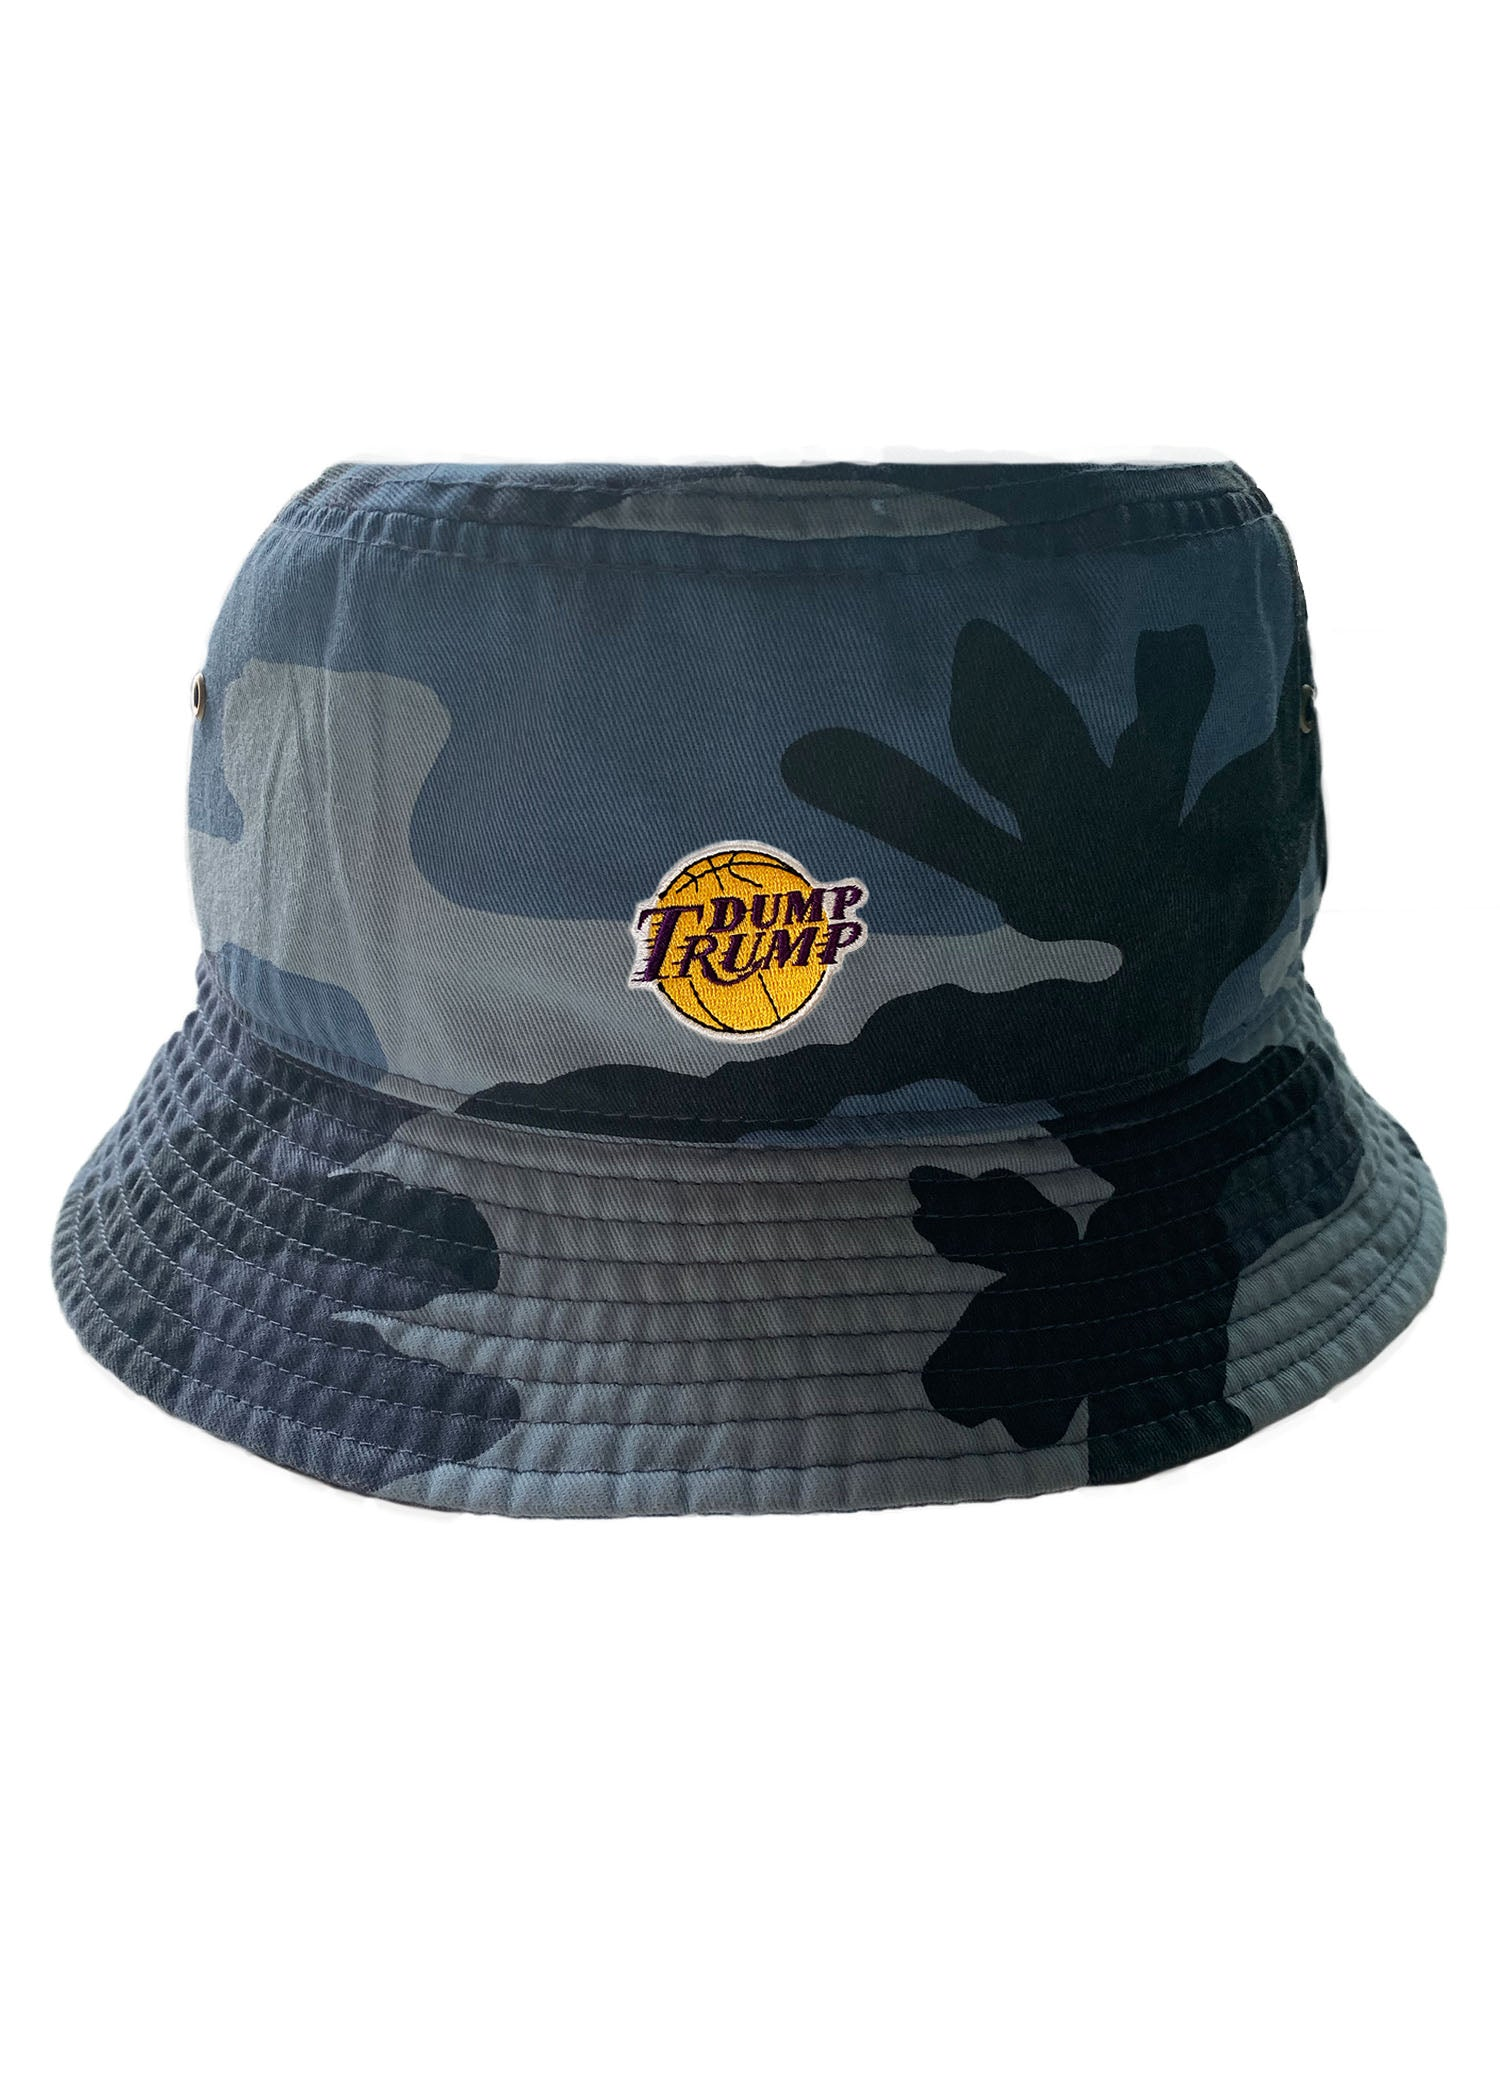 Dump Trump LA Hoops Bucket Hat